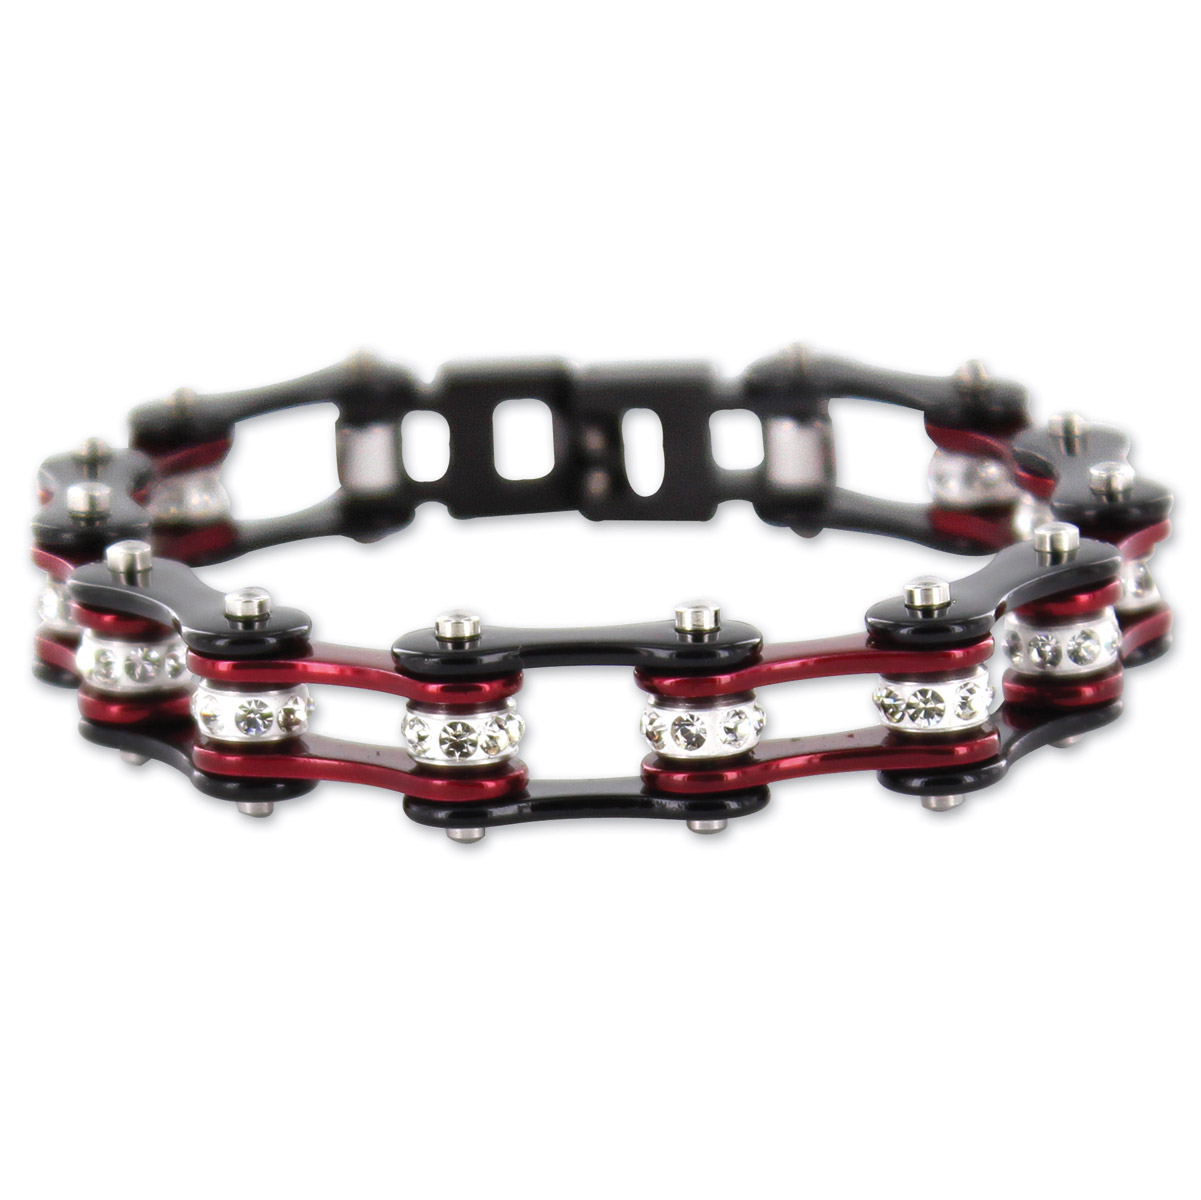 Kodiak Black/Candy Red with Crystals Chain Bracelet